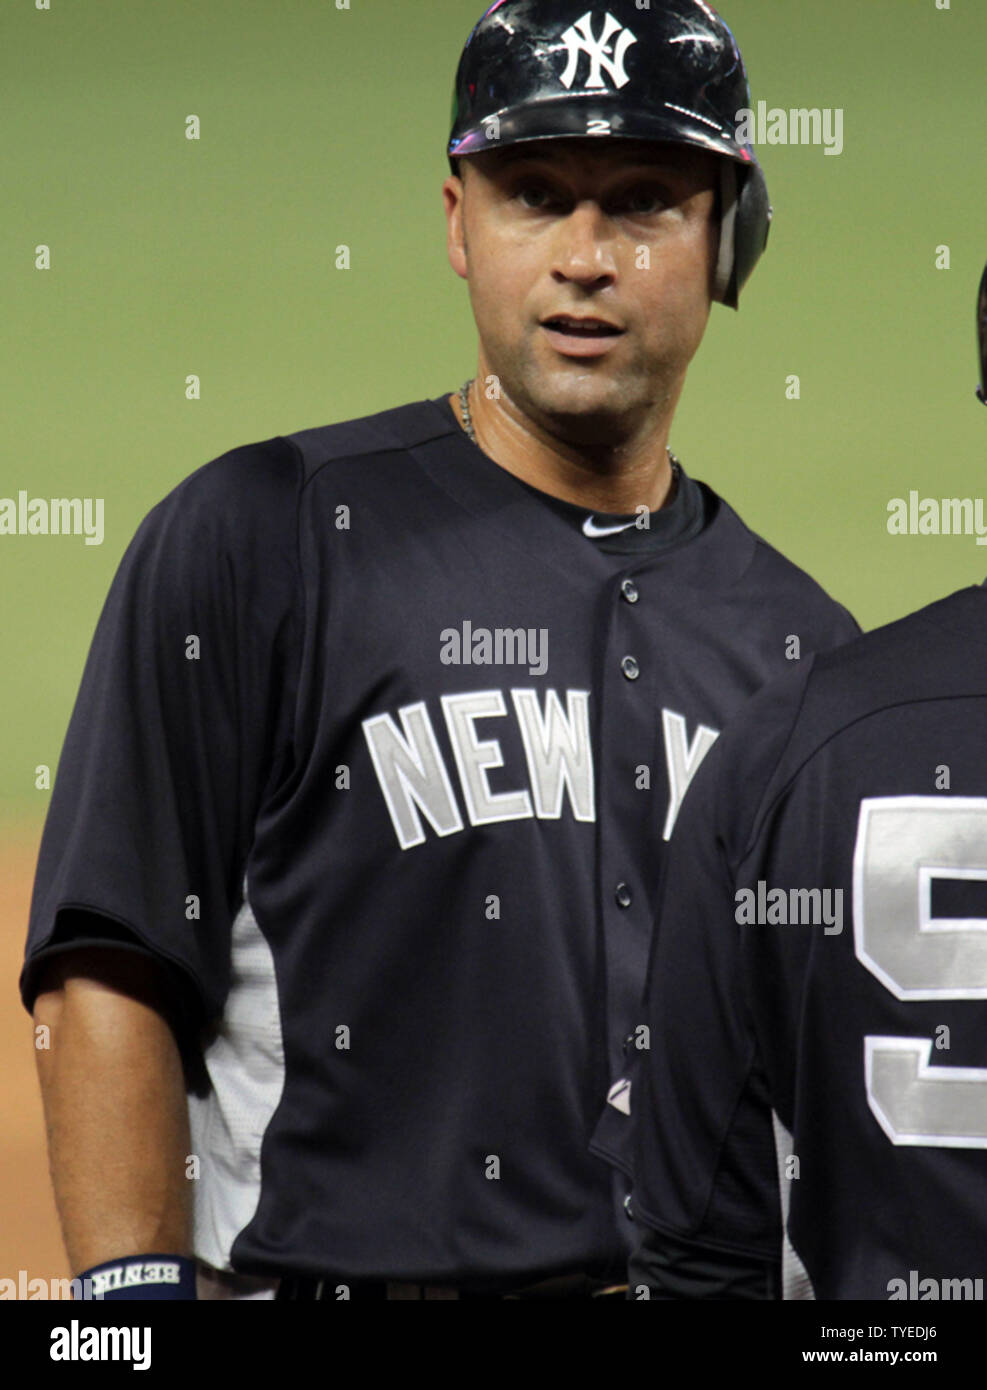 brand new af2c6 21424 The New York Yankees Derek Jeter stands in the outfield ...